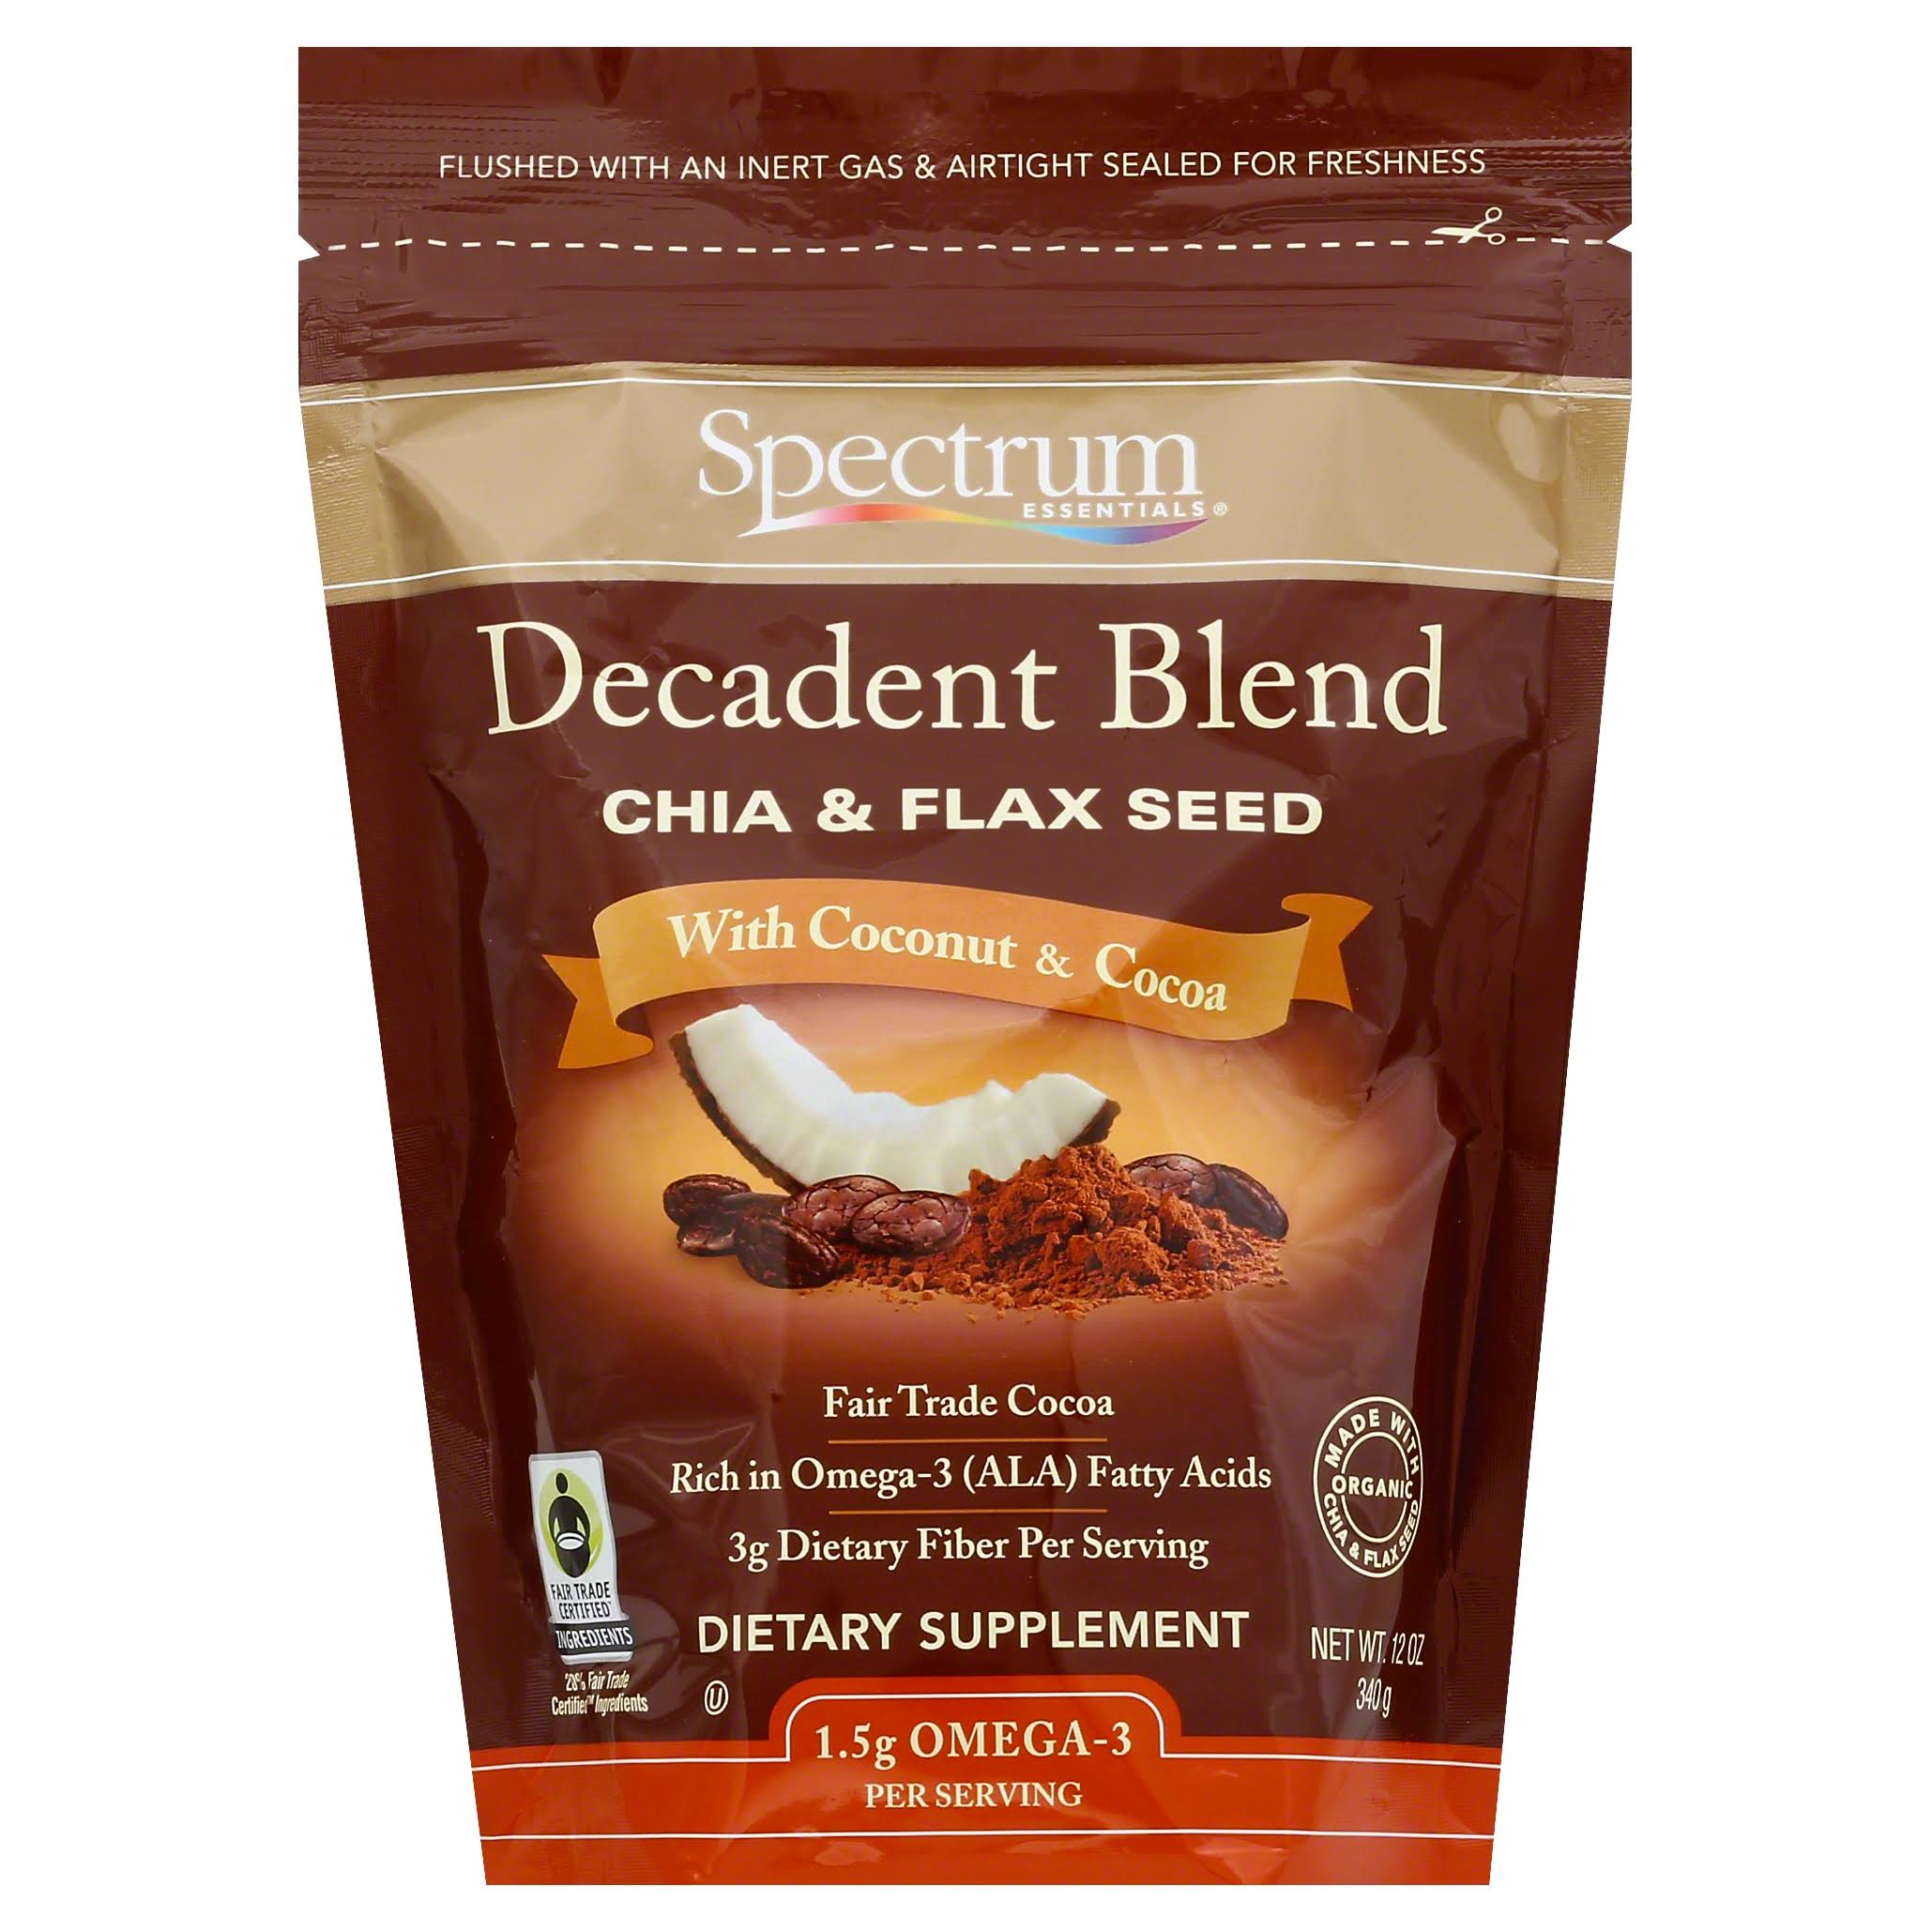 Spectrum Essential Cocoa and Coconut Chia and Flax Seed Decadent Blend - 12oz